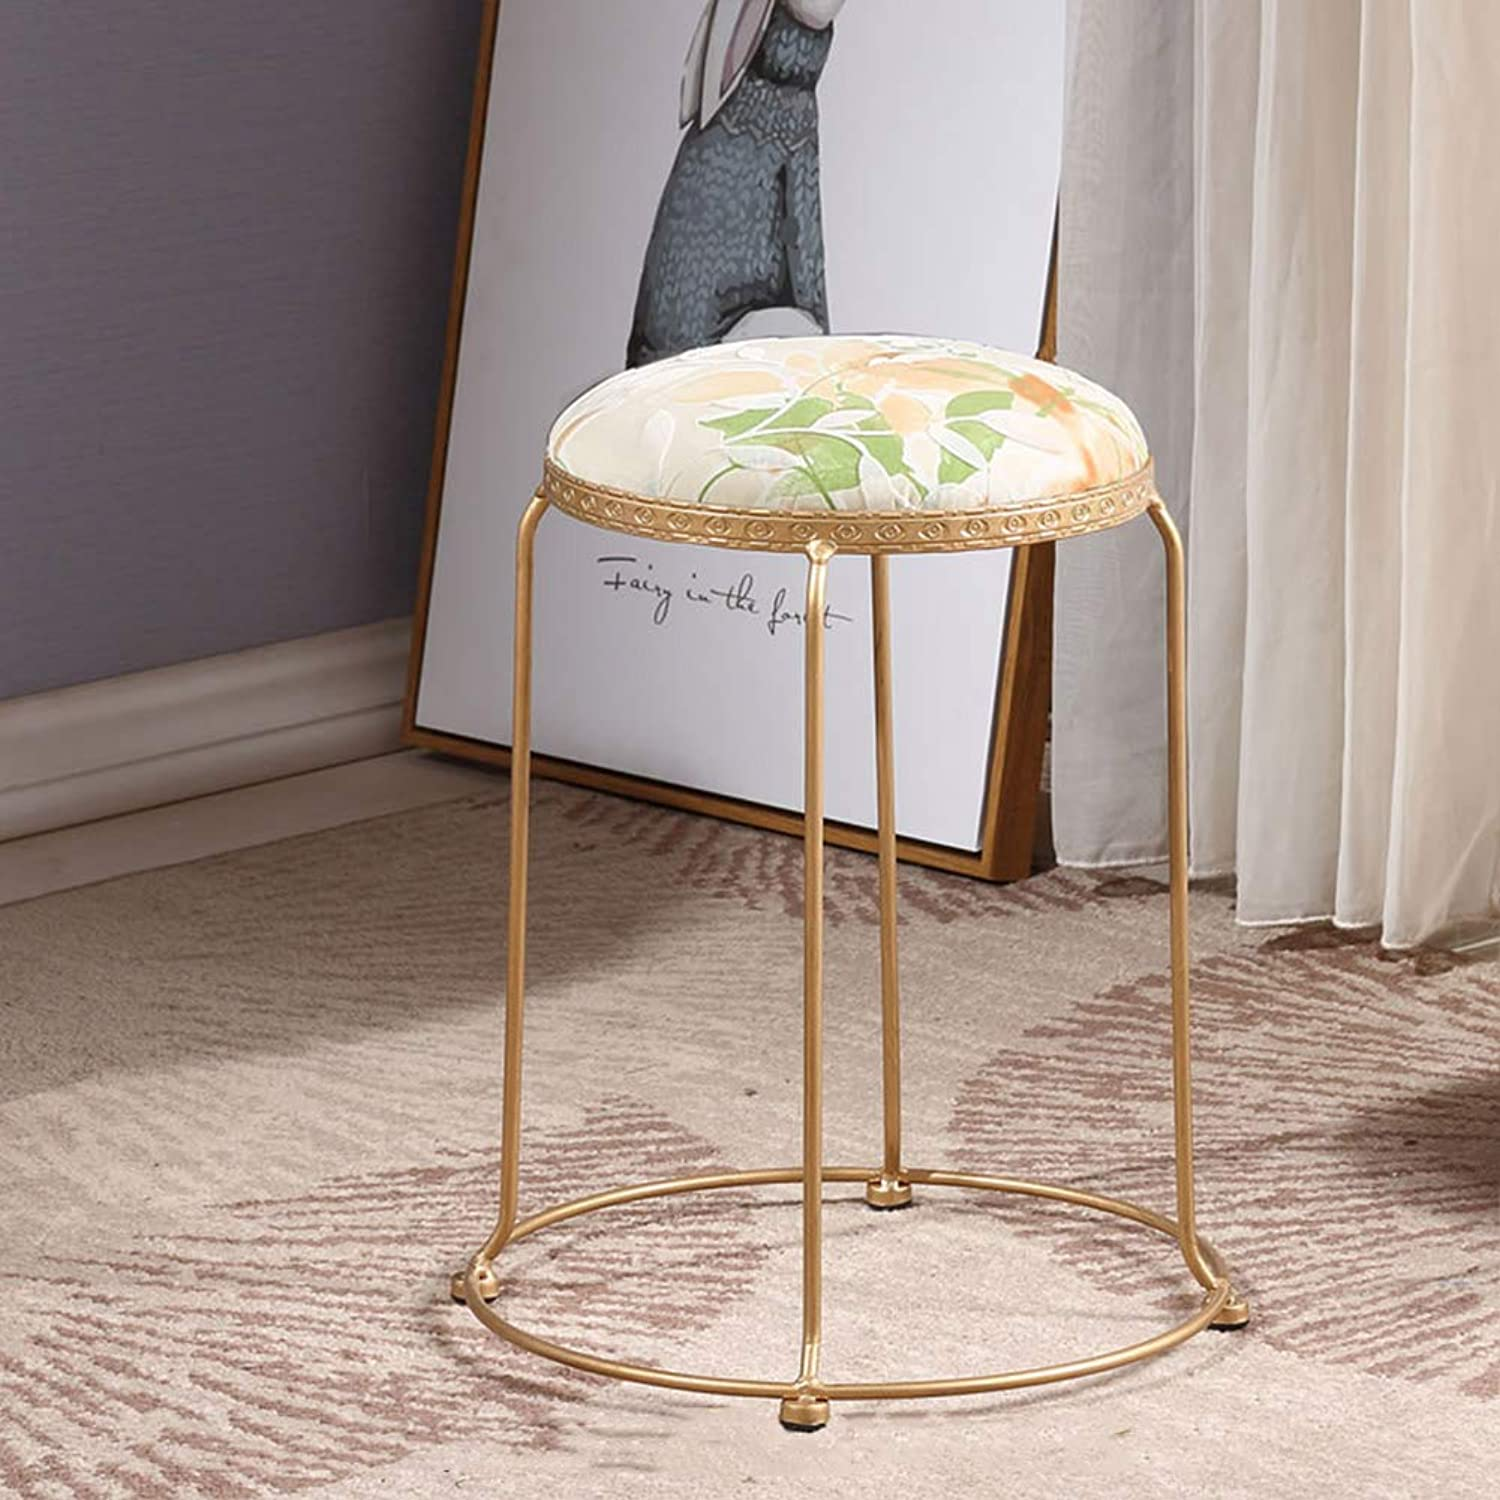 ZHAOYONGLI Stools Footstool Work Stool Metal Cloth Coffee Table Short Soft Stool No Space Printing Multiple Styles Creative Solid Durable Long Lasting (color   Leaf Pattern, Size   30CM)